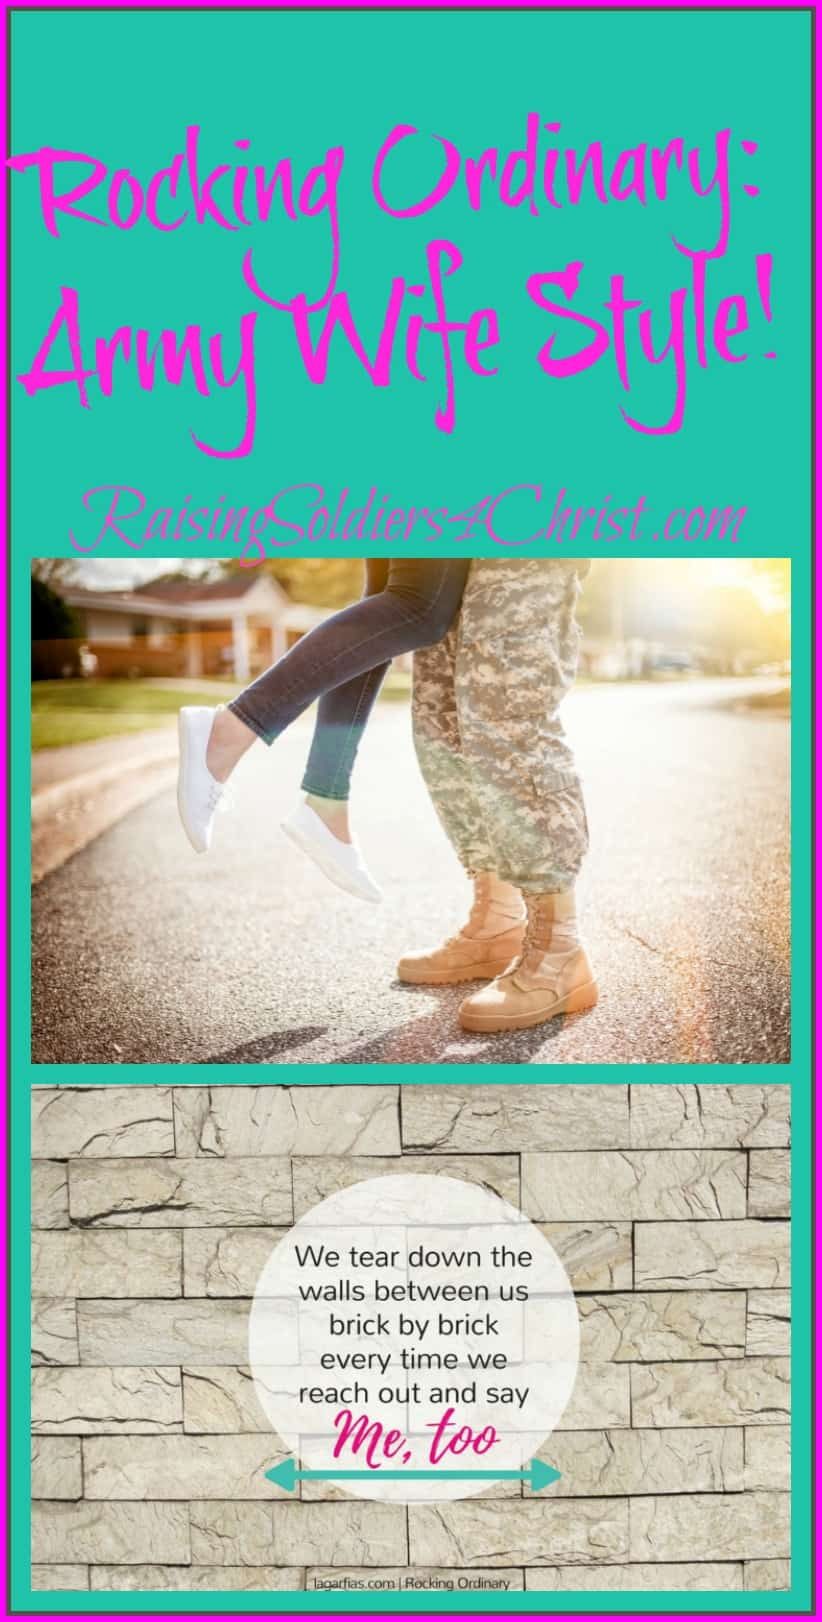 Rocking Ordinary-Army Wife Style! Graphic